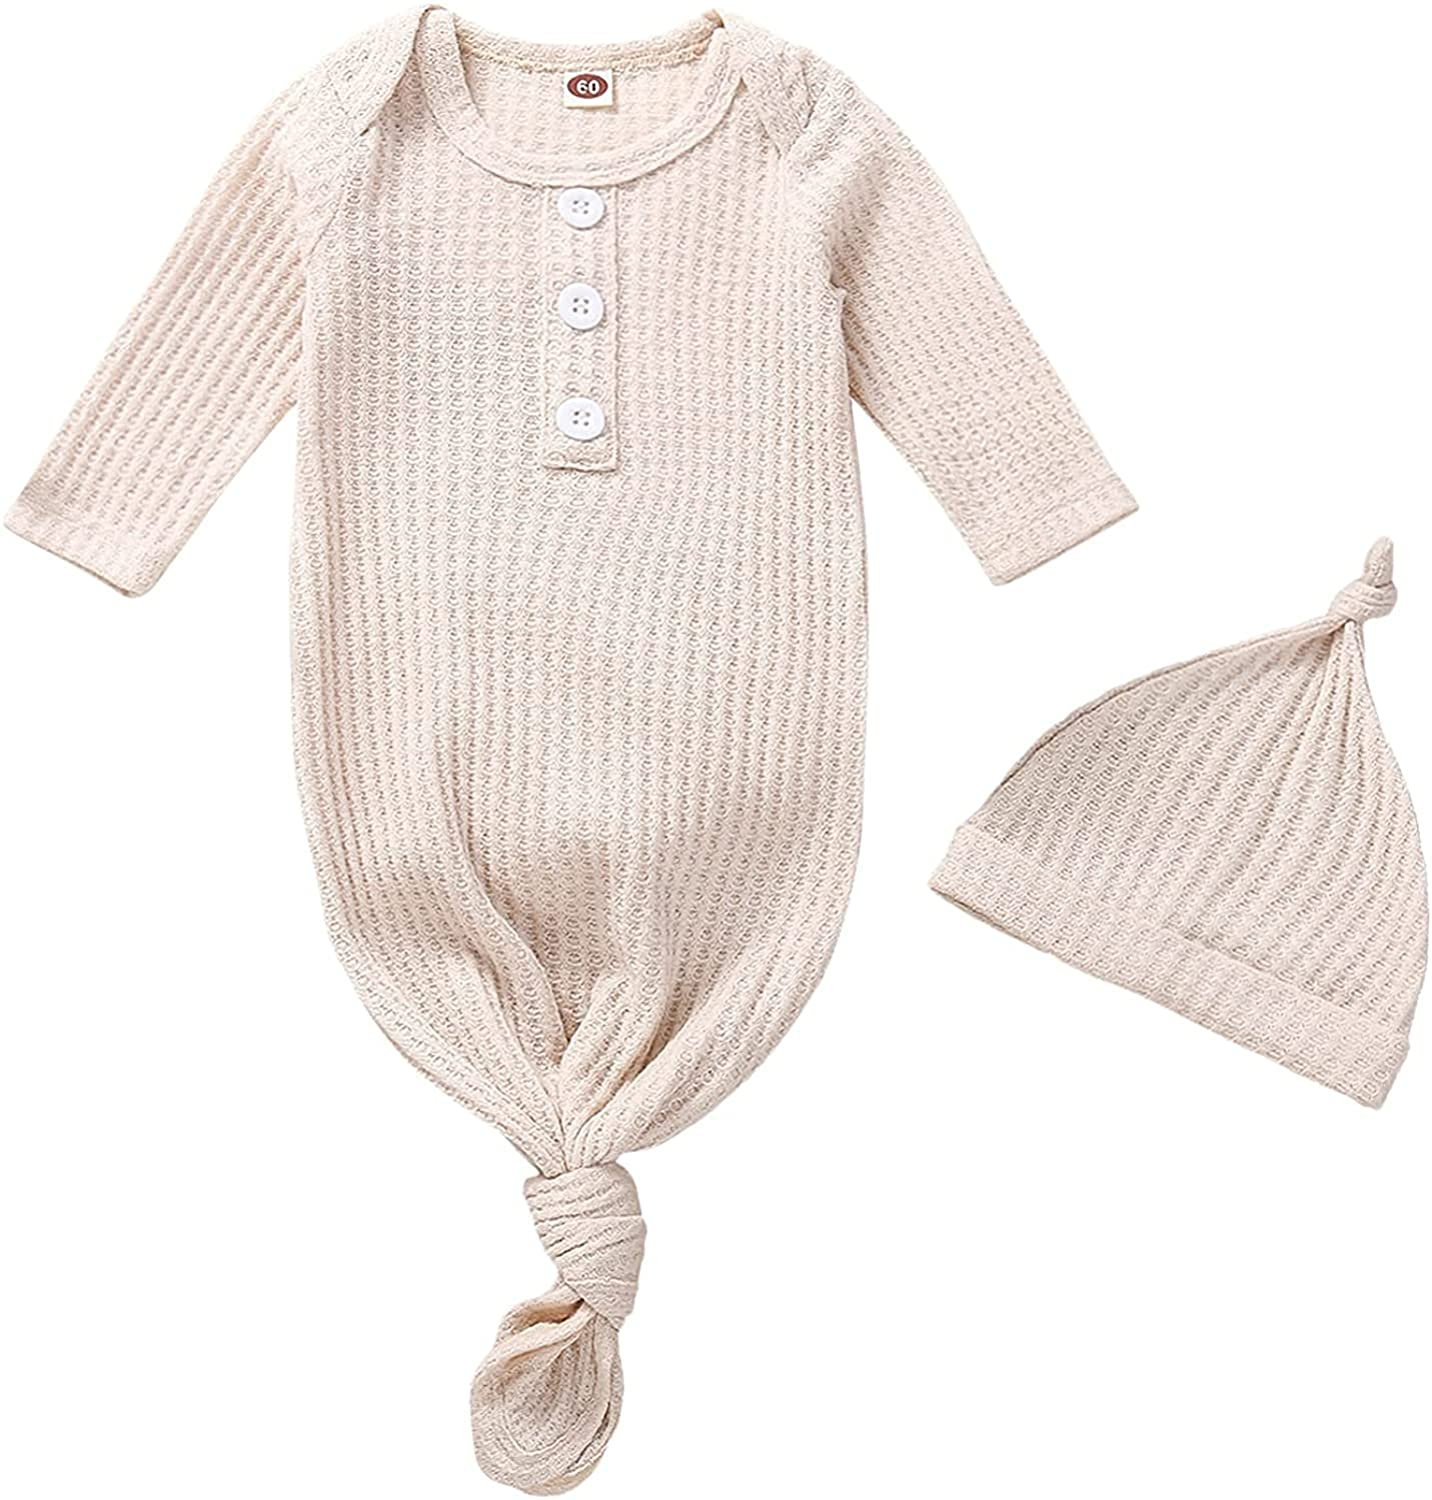 Baby Girl Boy Coming Home Knotted Gown Unisex Newborn Infant Sleep Onesie Outfit Cute Baby Winter Pajamas